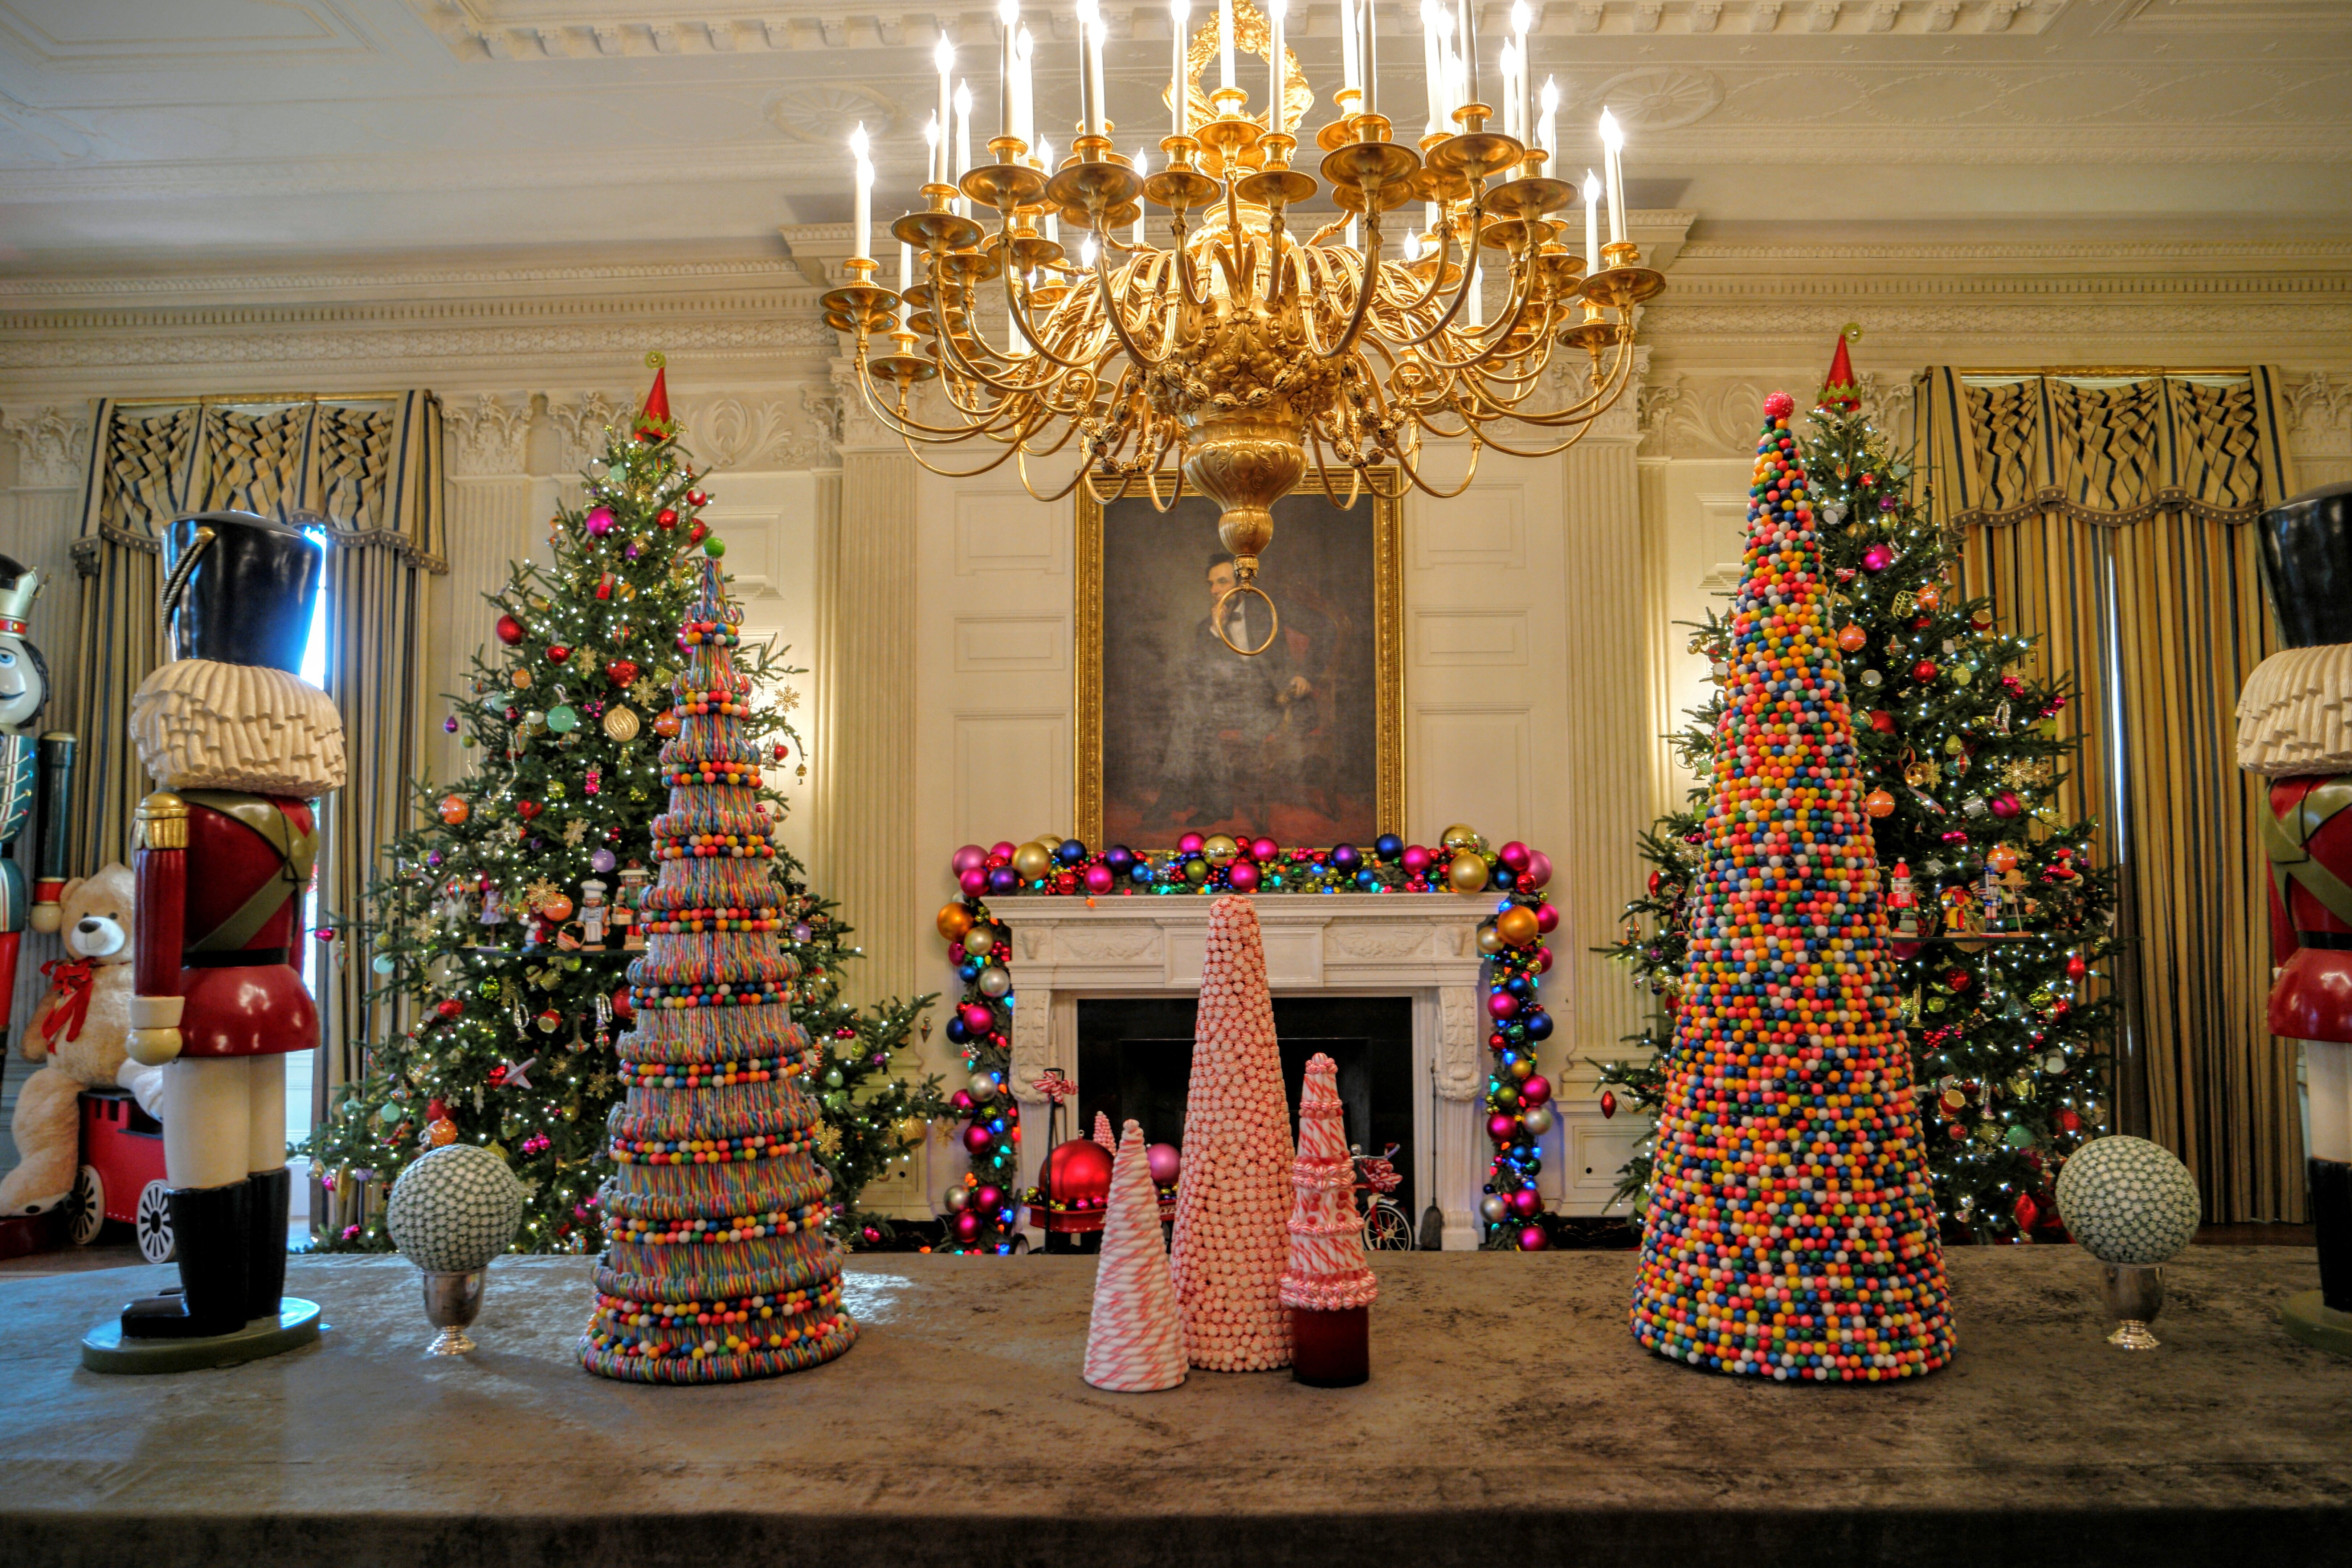 a901d0ffbe81a70ad366061870573c3a The WhiteHouse is the official residence